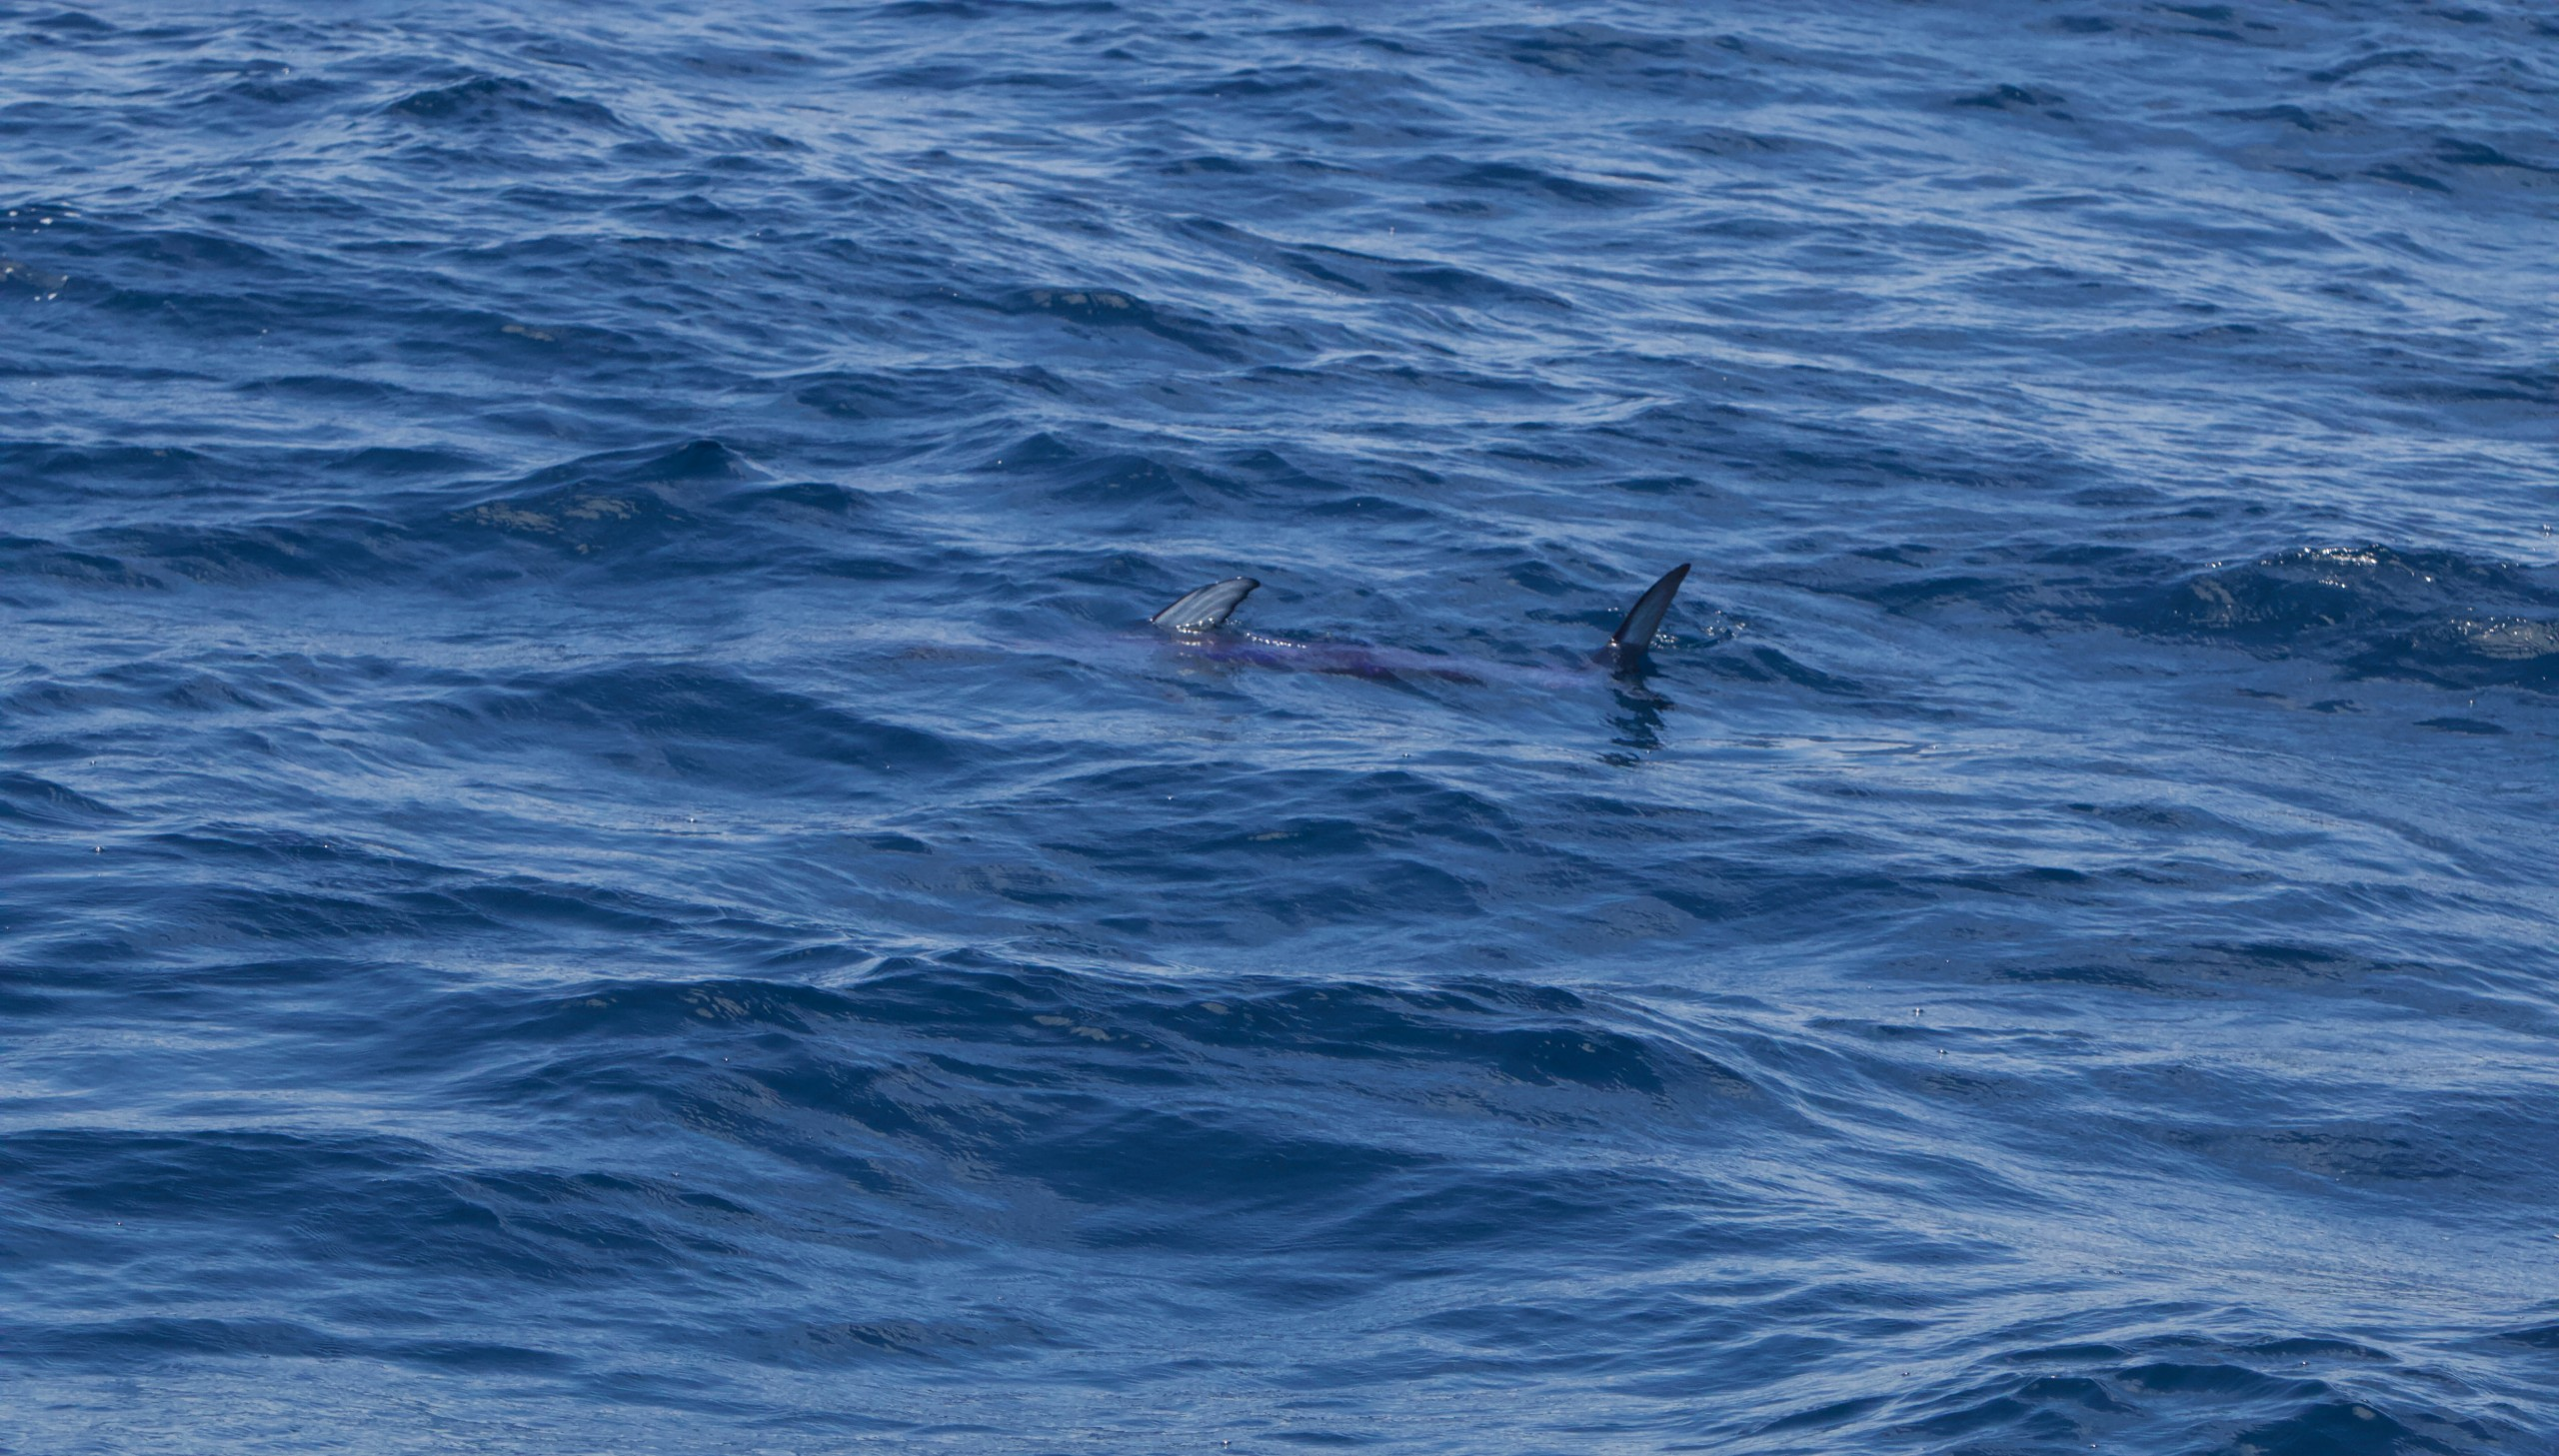 A Swordfish cruising under the surface just offshore of the islands.